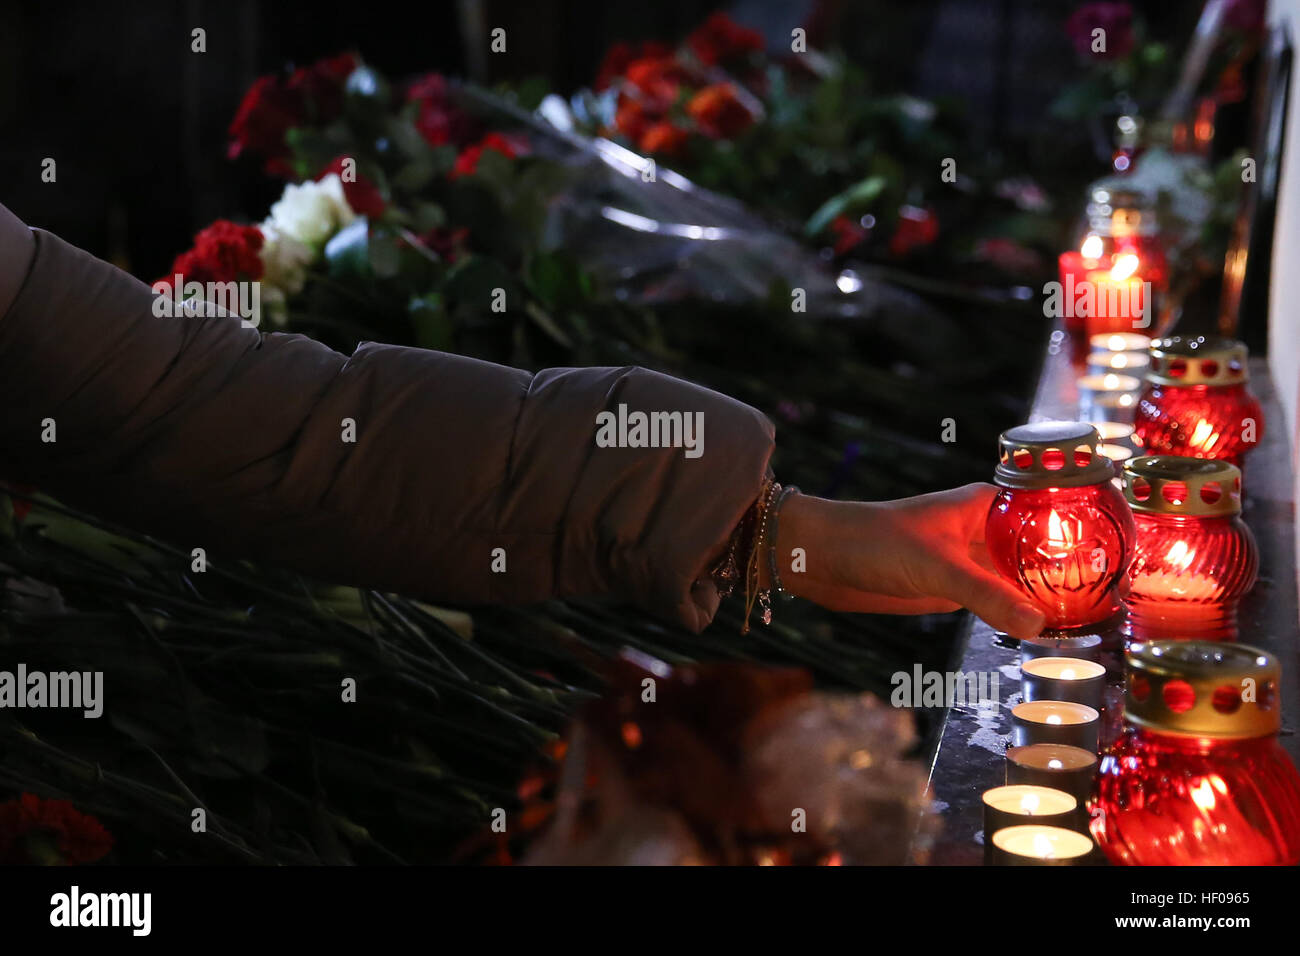 Moscow, Russia. 25th December, 2016. People lays candles near Alexandrov Hall, a rehearsal room of the Alexandrov Stock Photo